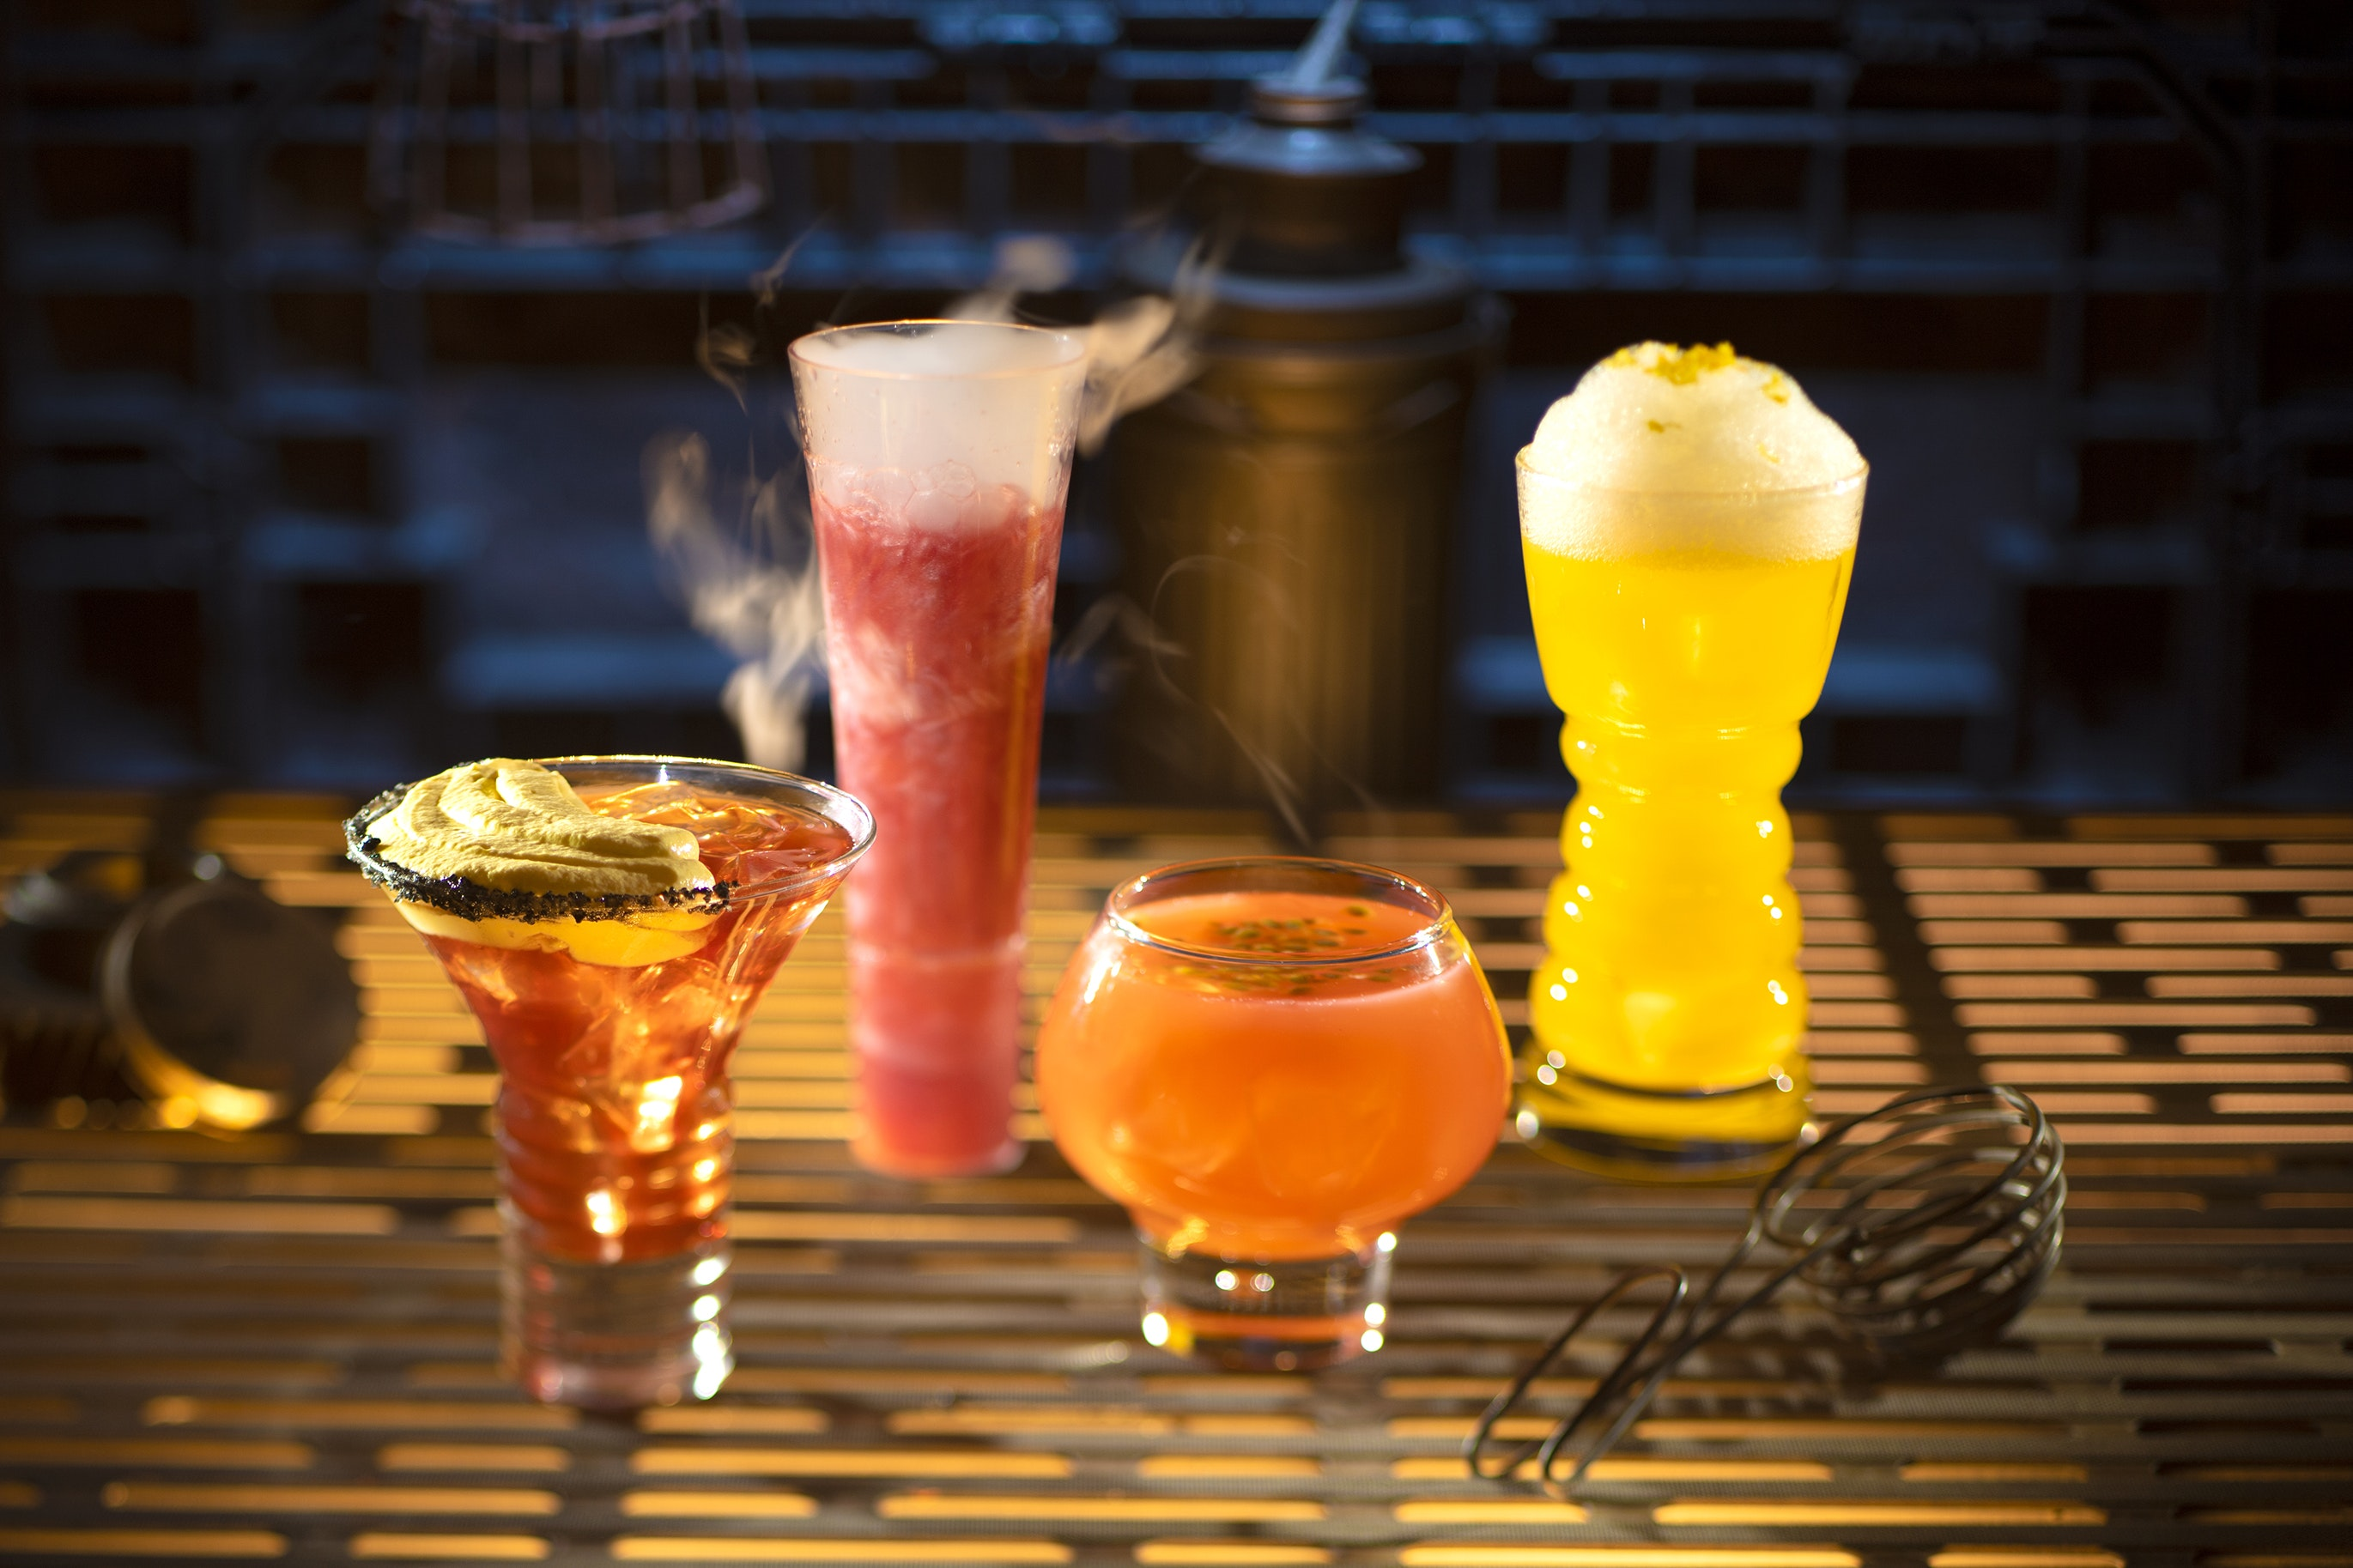 """Some of the alcoholic drinks at """"Star Wars"""" land include the Outer Rim, Bespin Fizz, Yub Nub, and Fuzzy Tauntaun (from left to right)."""